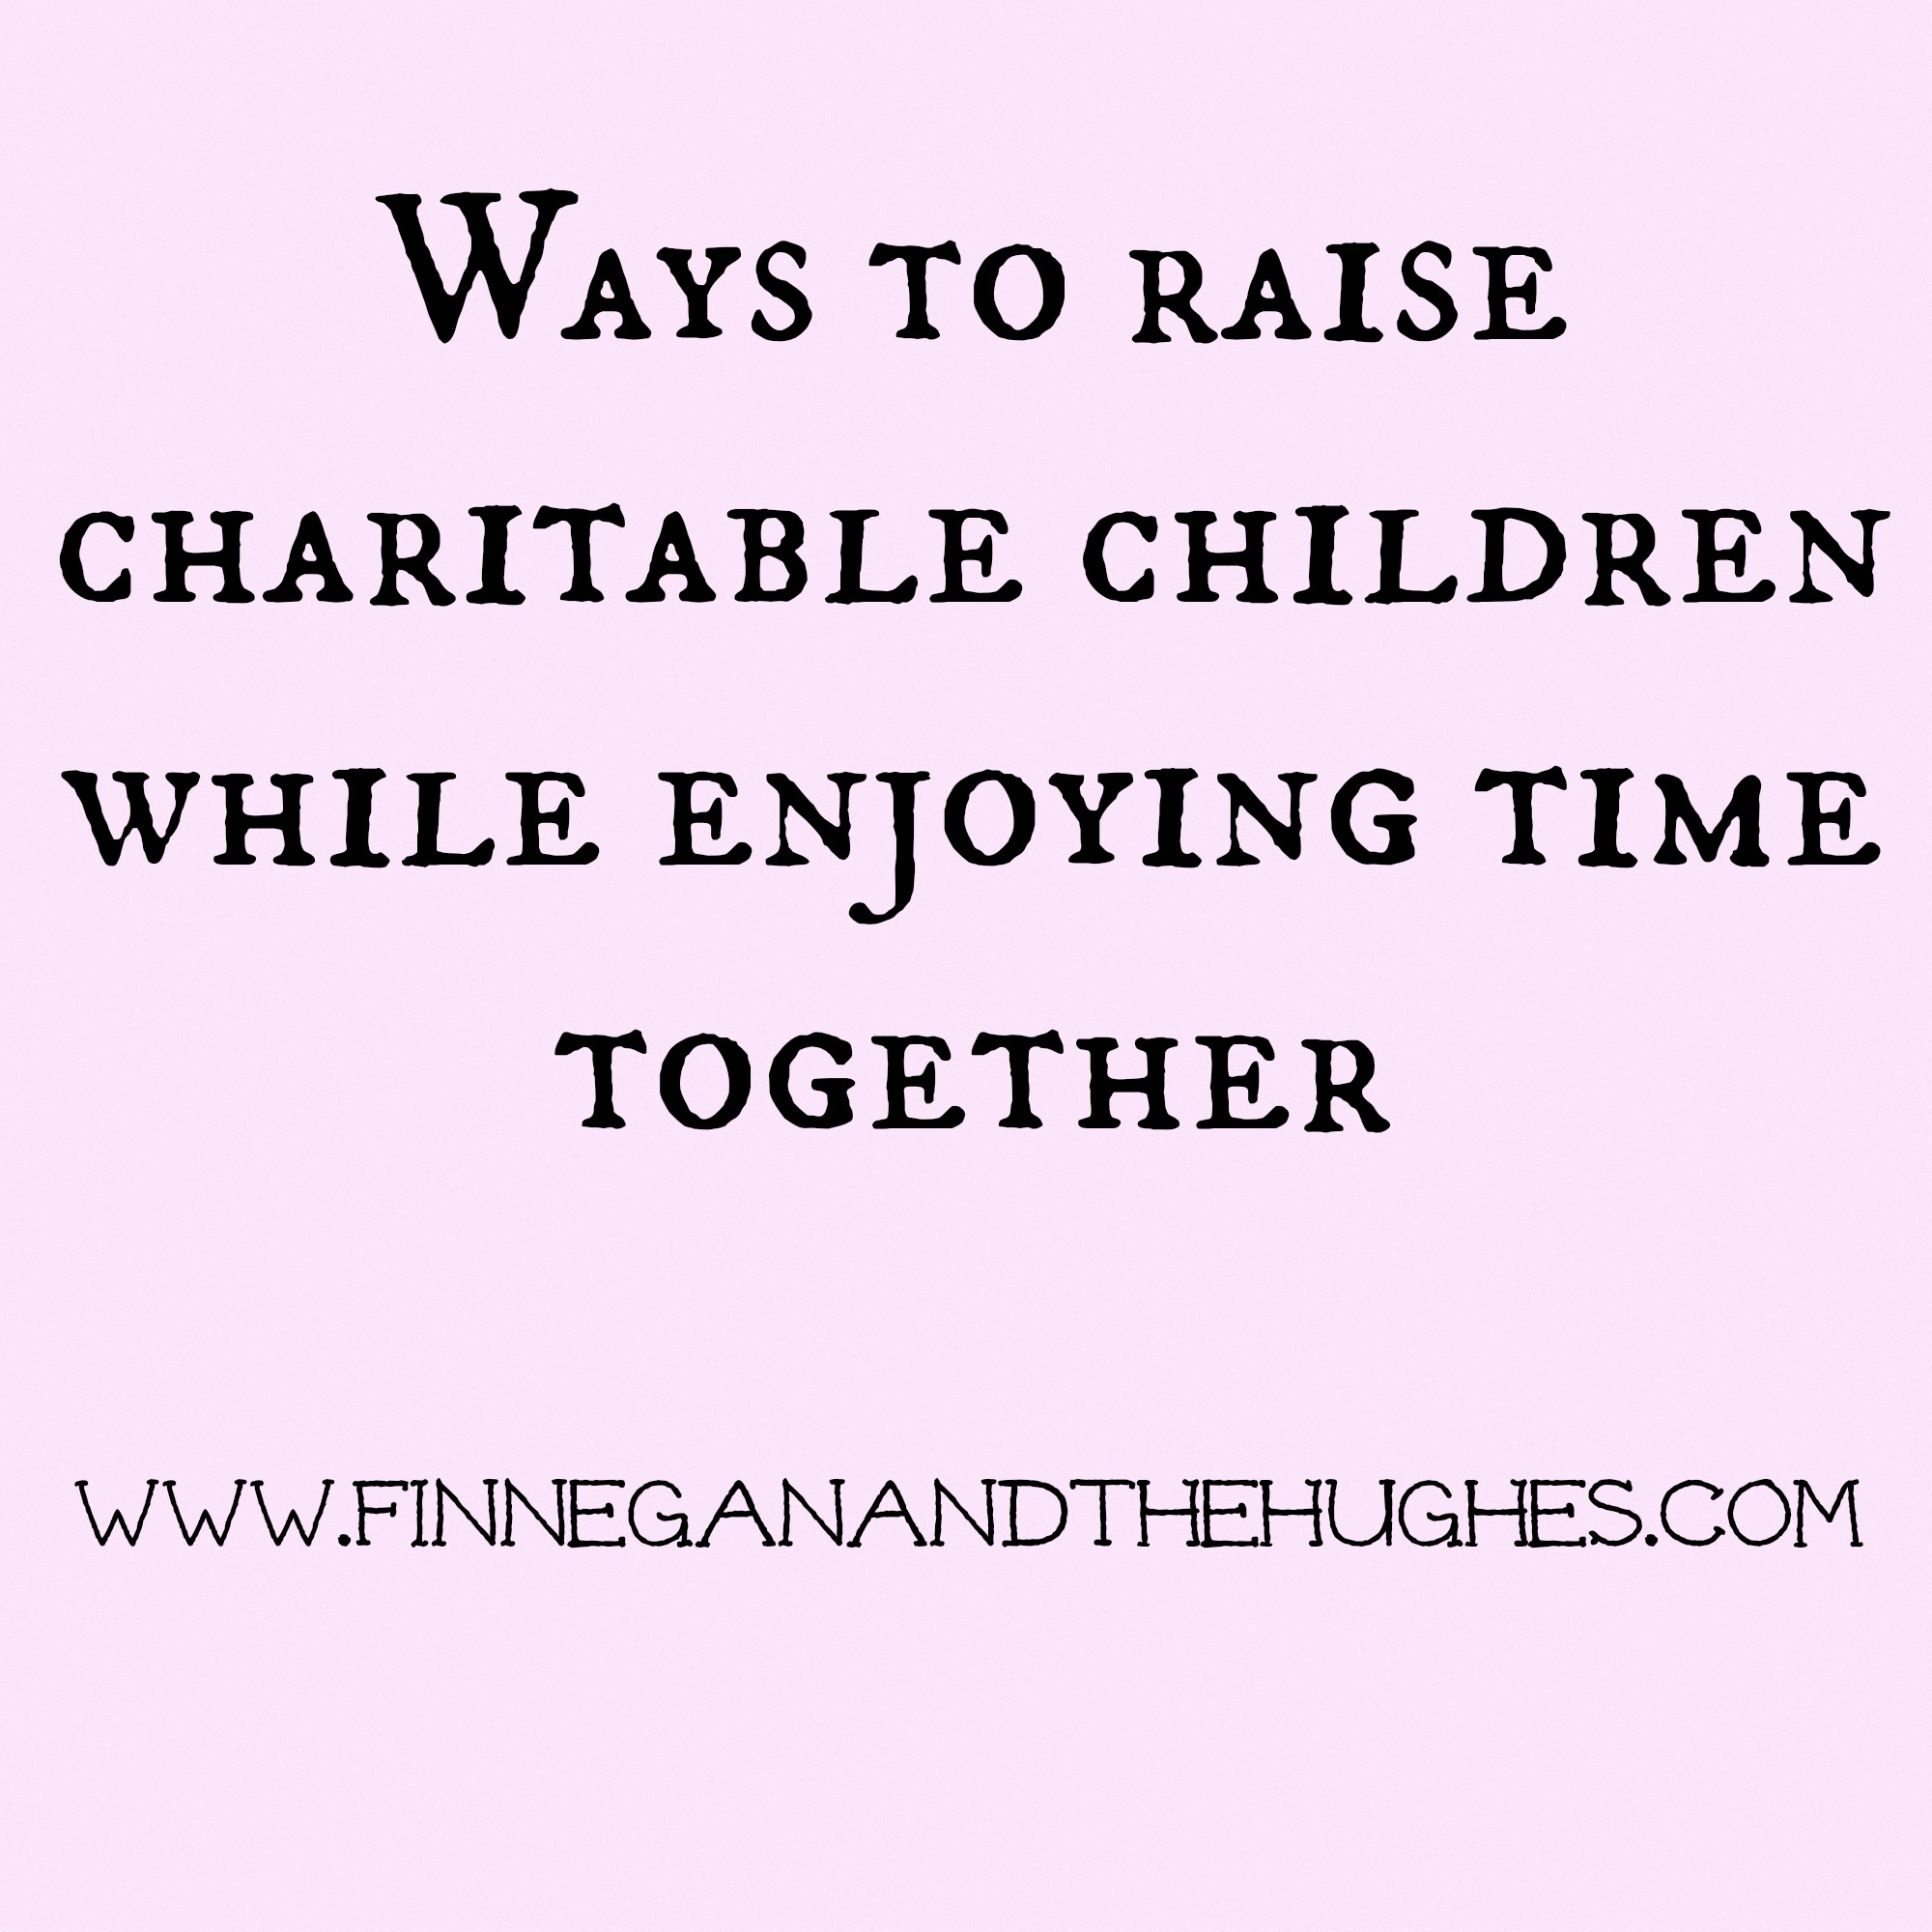 Ways To Raise Charitable Children While Enjoying Time Together